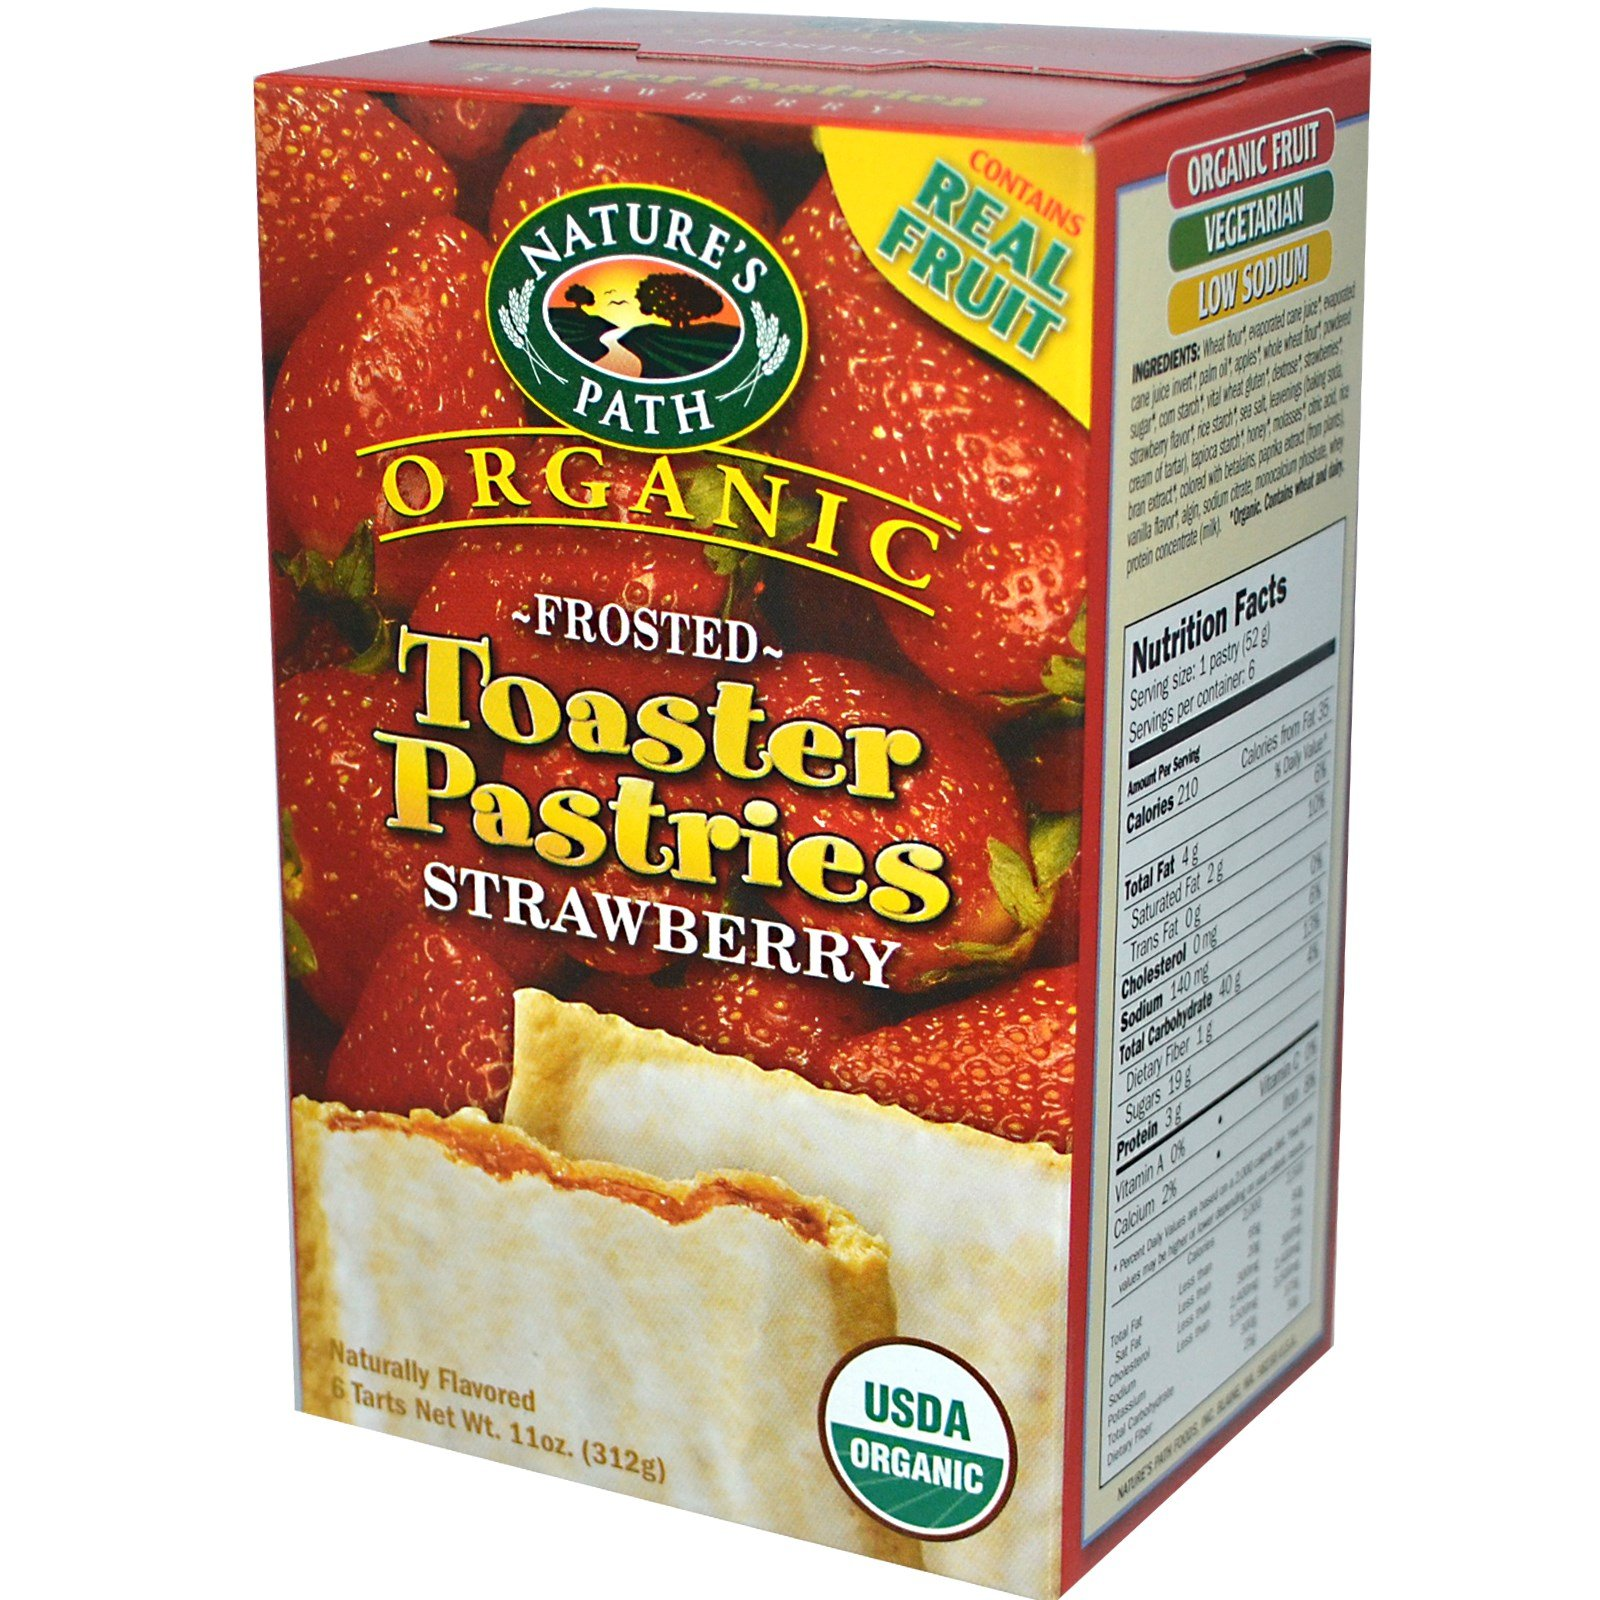 Nature's Path, Organic Frosted Toaster Pastries, Strawberry, 6 Tarts, 52 g Each - 3PC